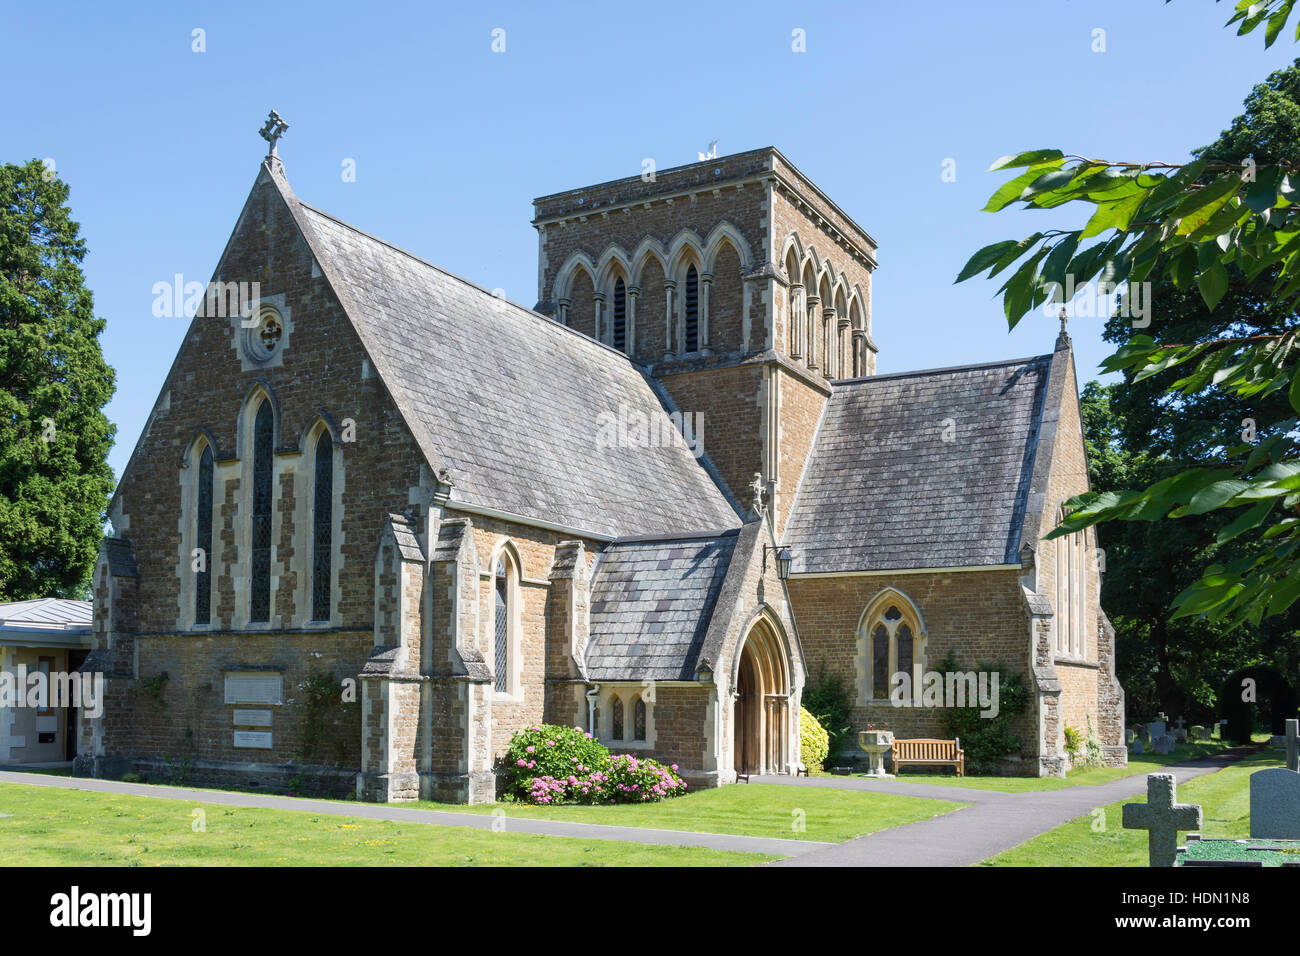 Holy Trinity Church Lyne & Longcross, Lyne lane, Lyne, Surrey, England, United Kingdom - Stock Image